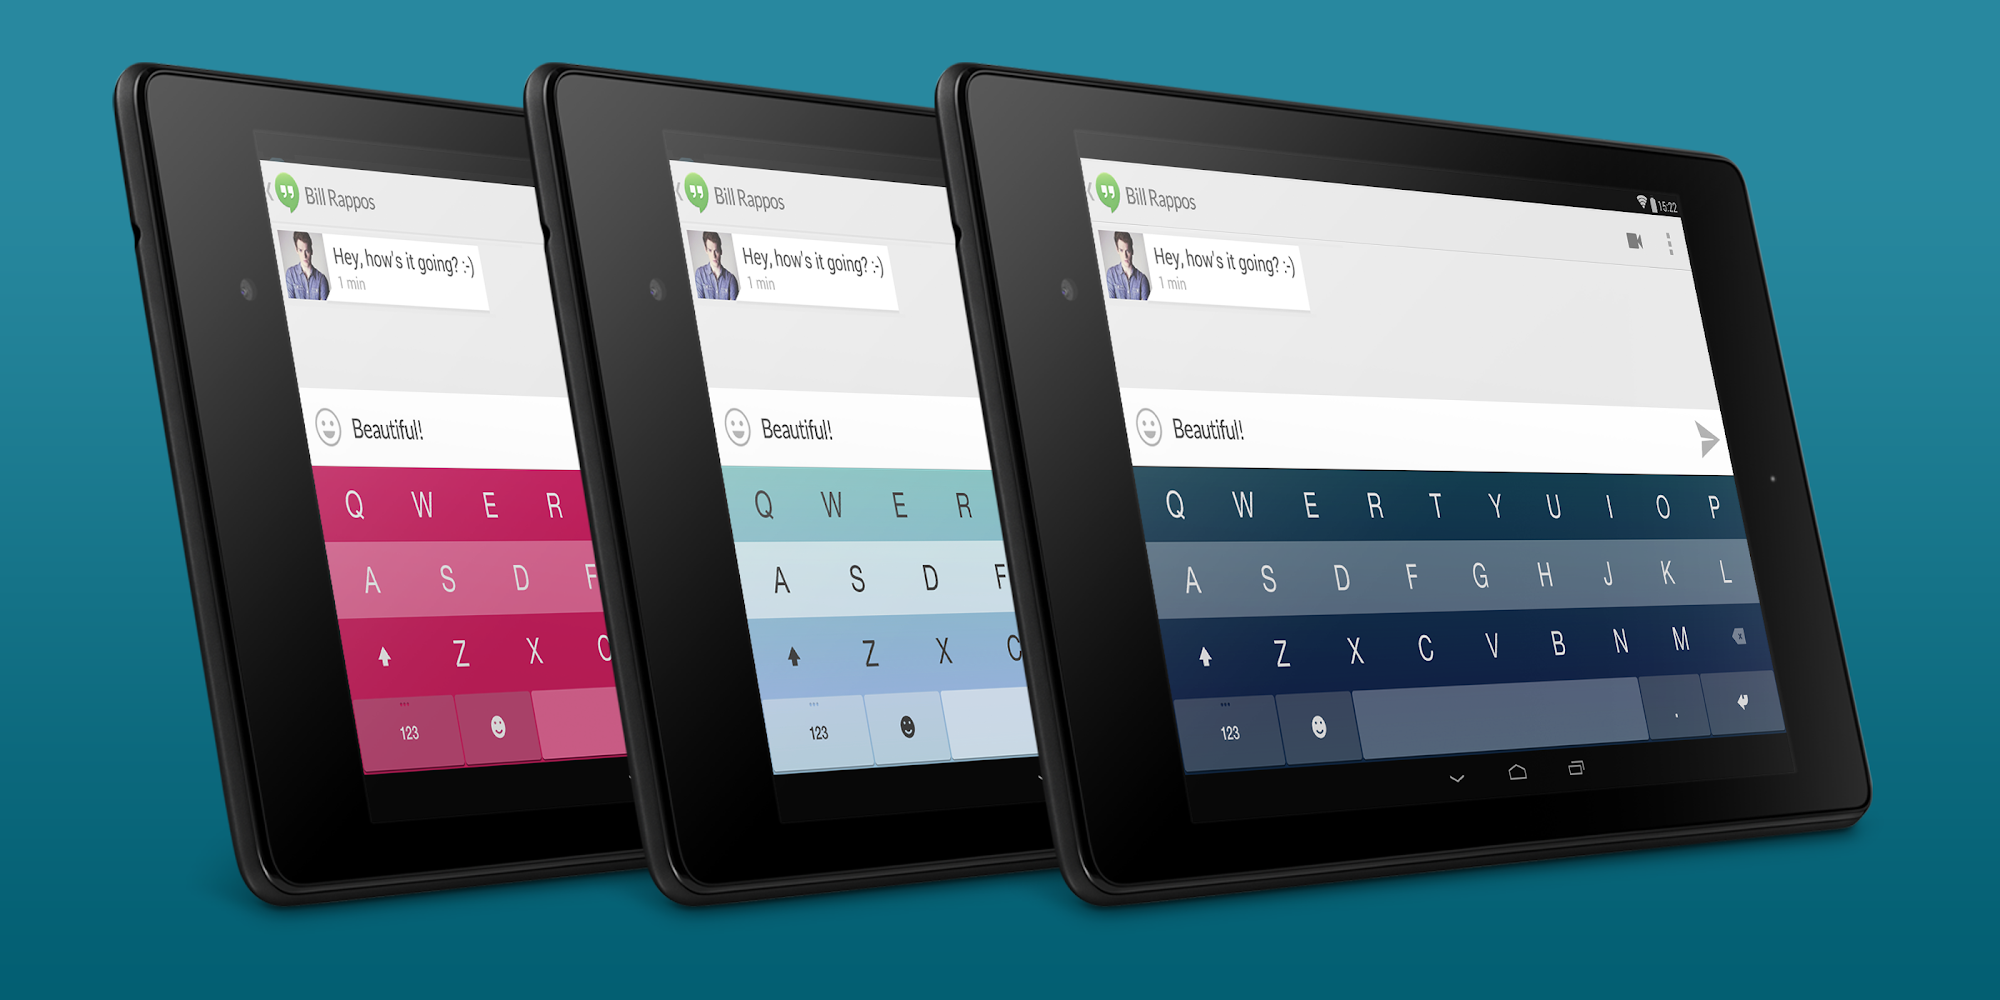 Fleksy + GIF Keyboard screenshot #15